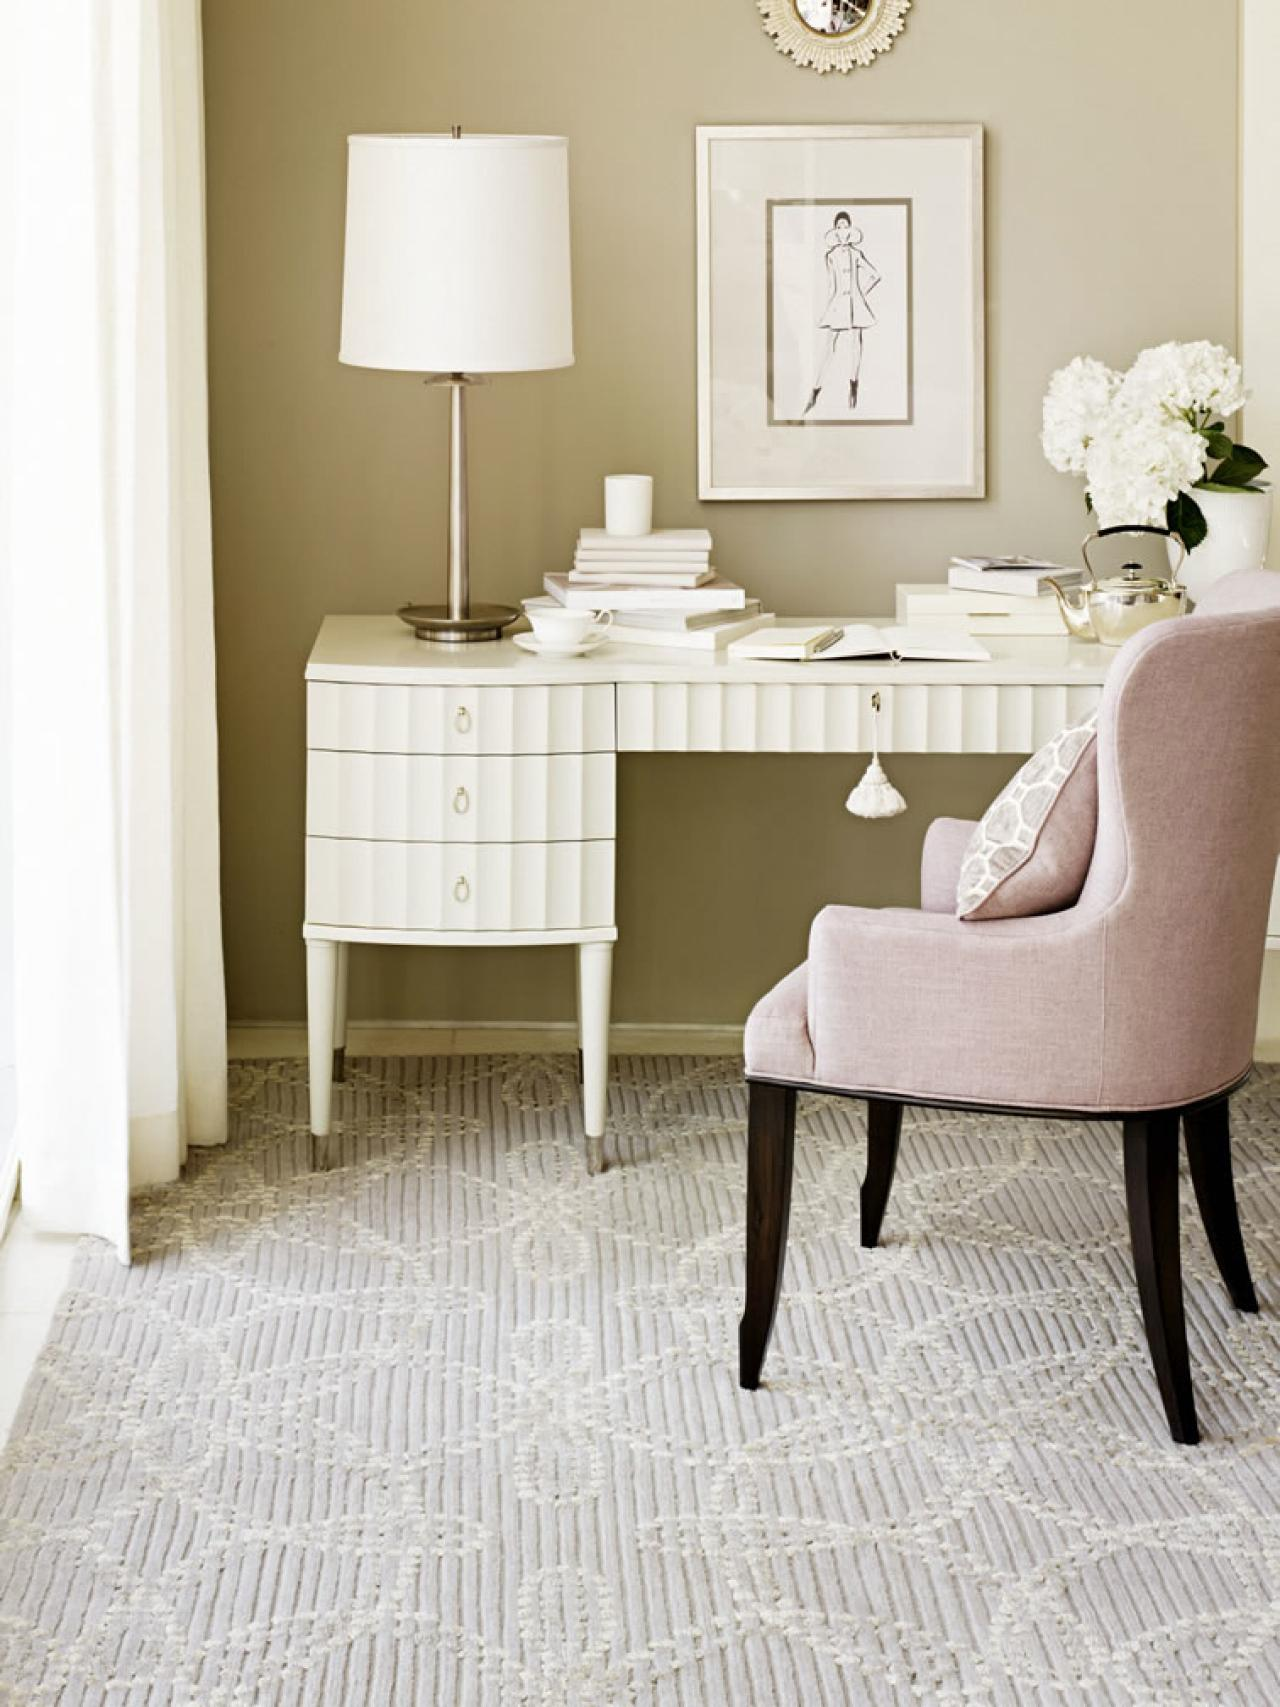 Choosing the best area rug for your space hgtv for Best carpet for home office